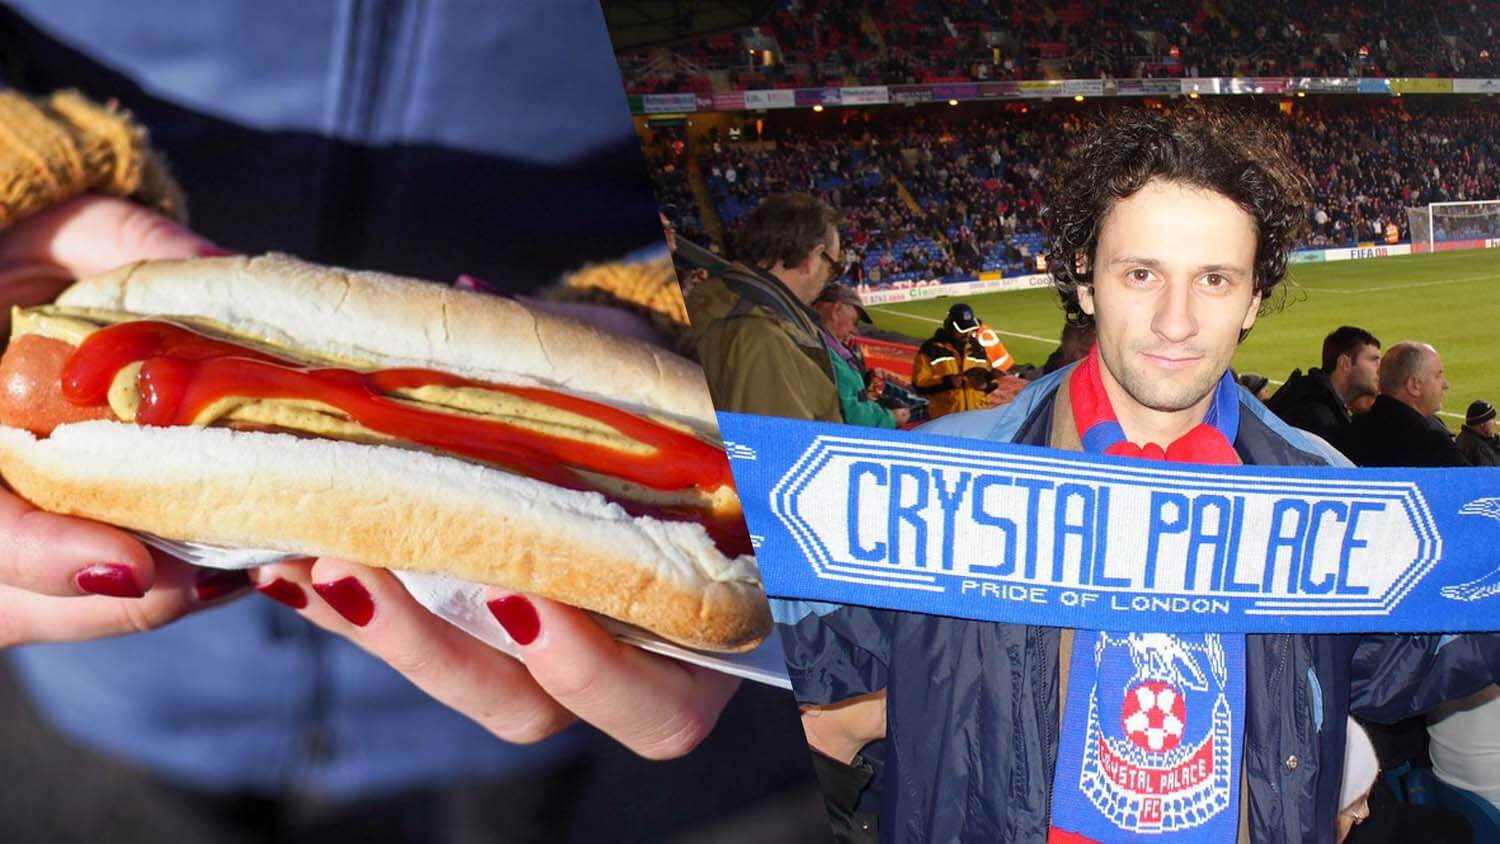 Sainsbury's Vegan Burgers and Hot Dogs Fool Football Fans Into Thinking They're Made From Meat